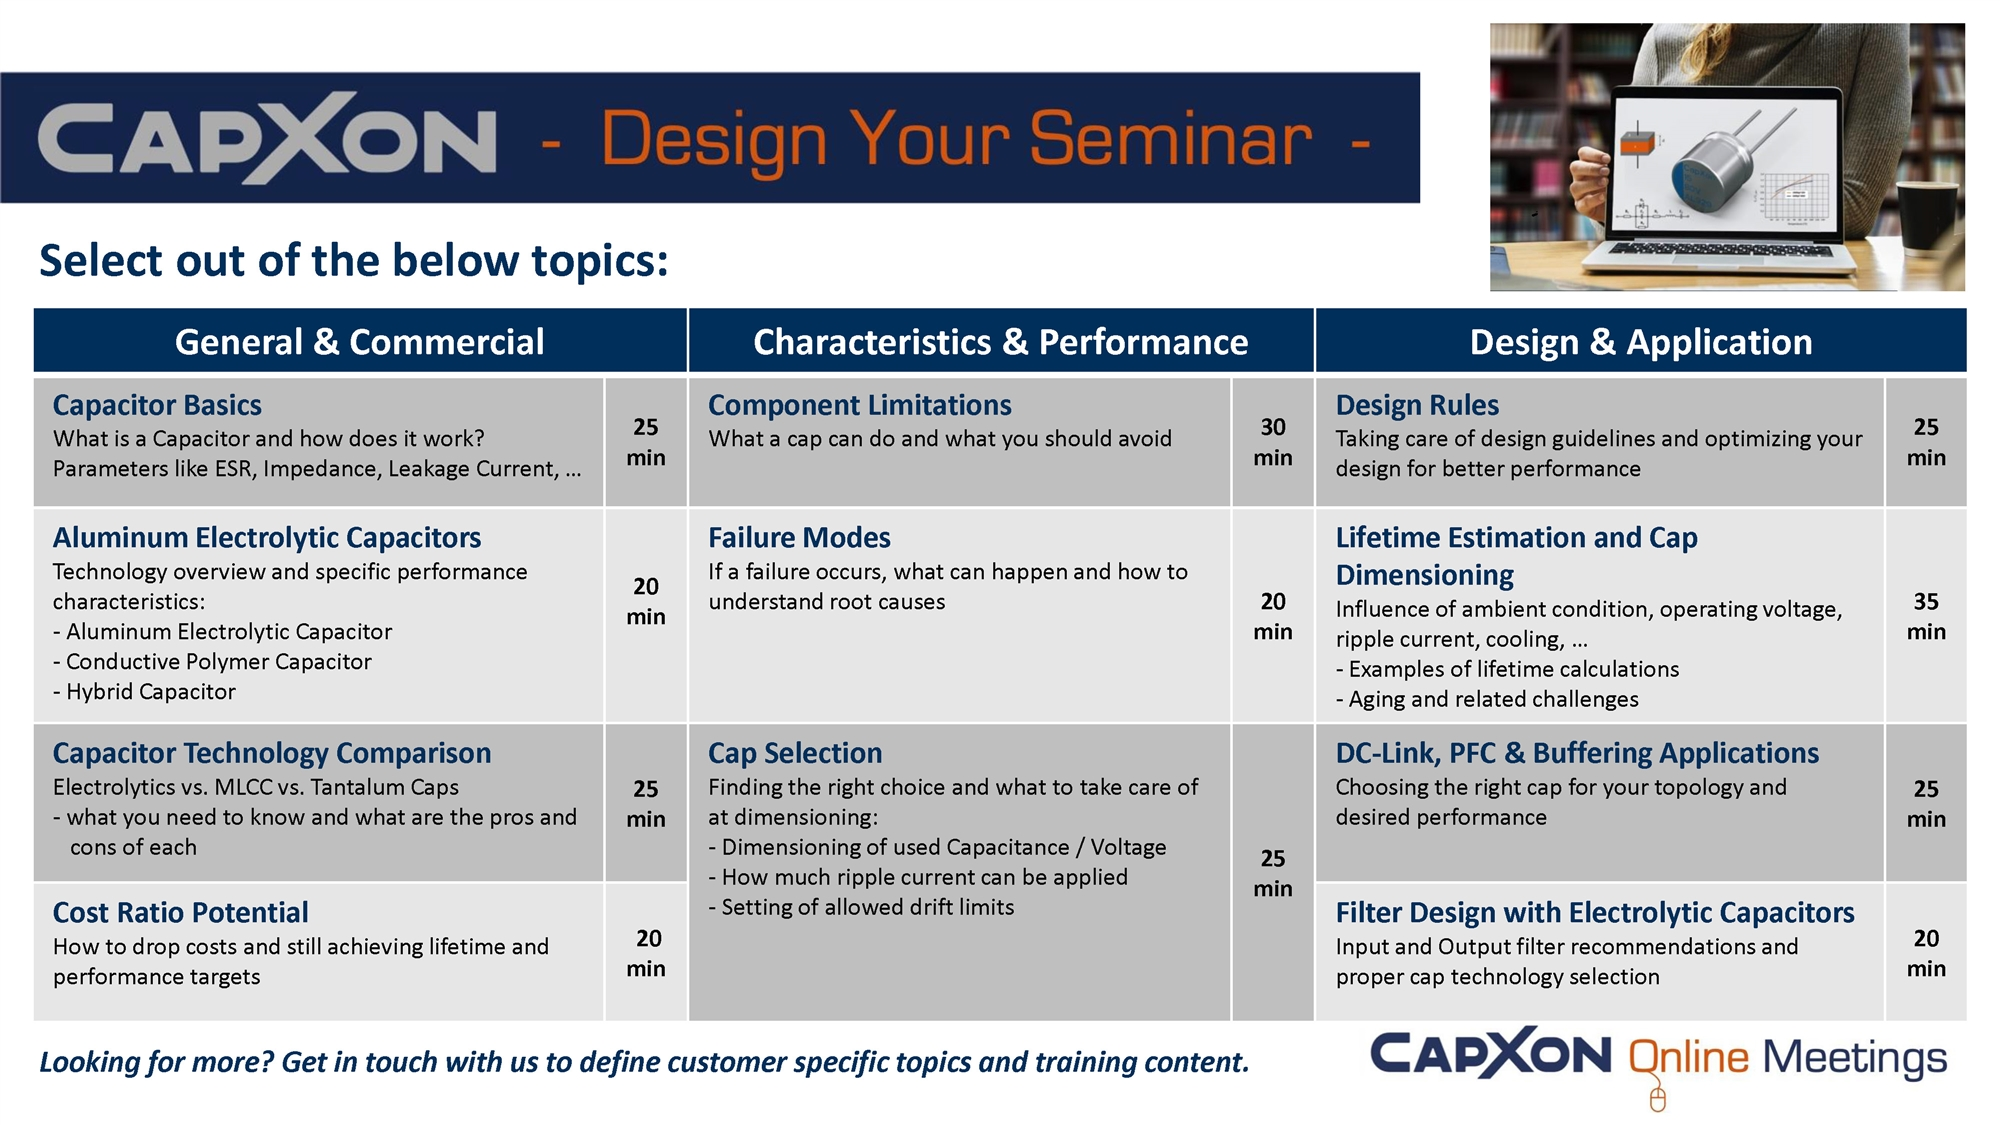 CAPXON Online Meetings